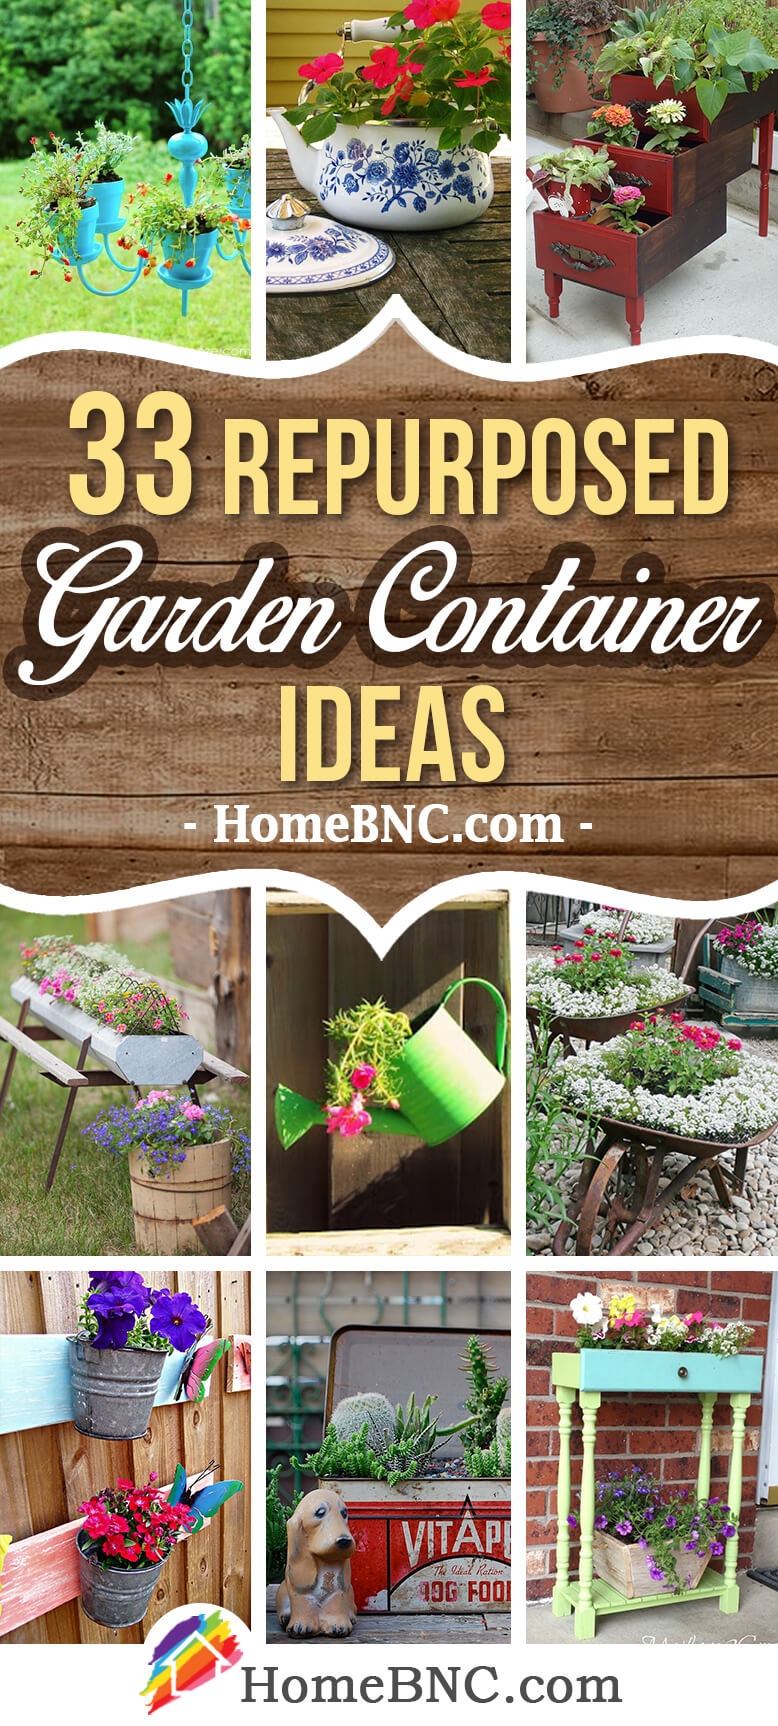 33 Best Repurposed Garden Container Ideas and Designs for 2018